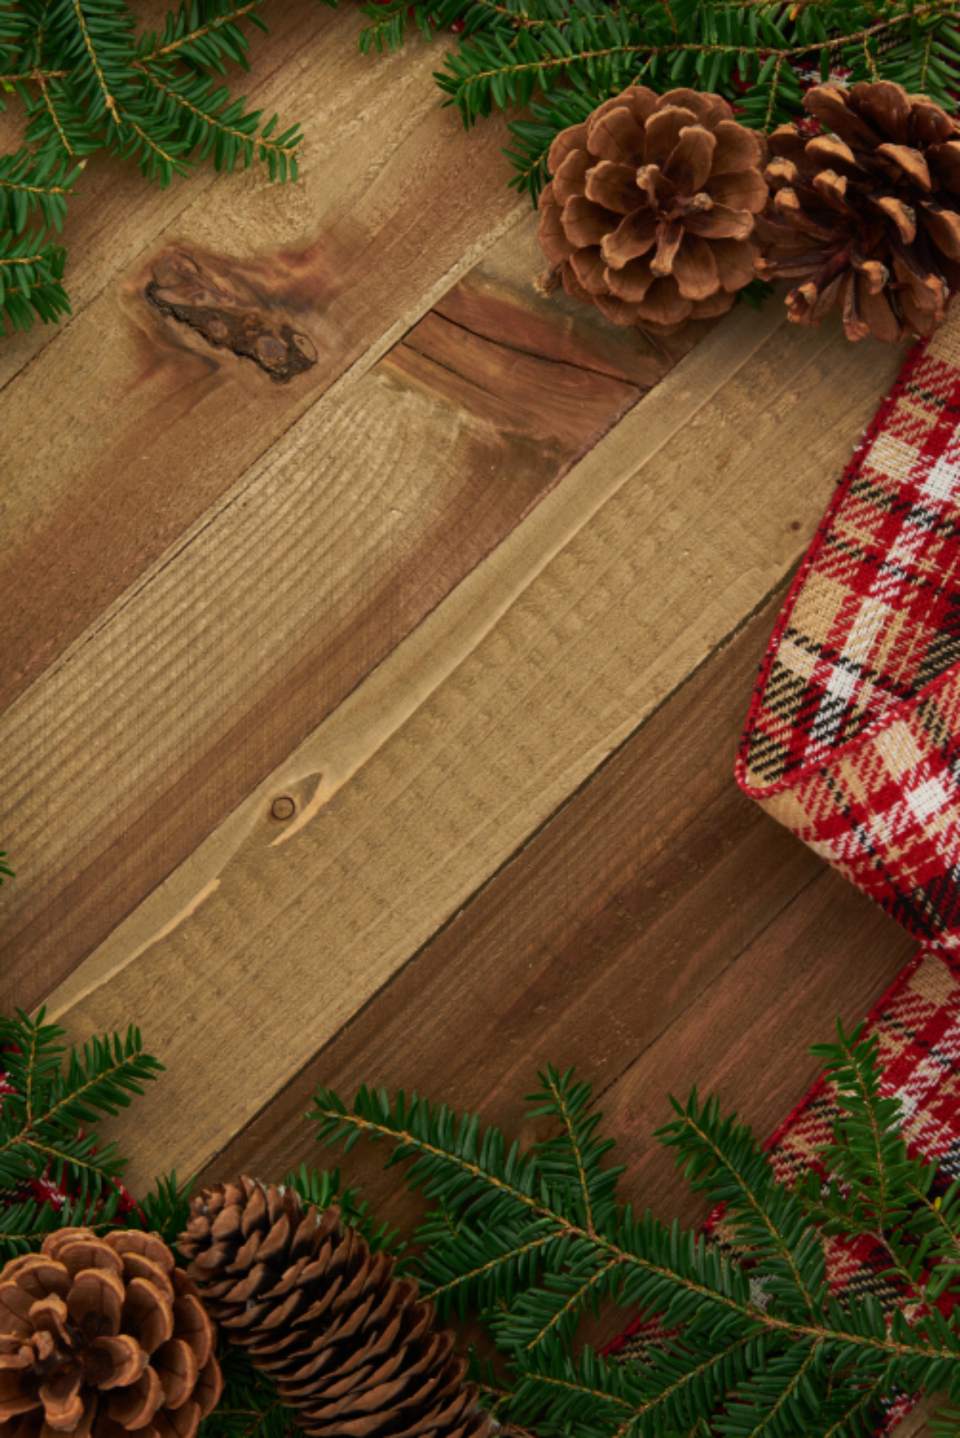 Free stock photo of holiday wood